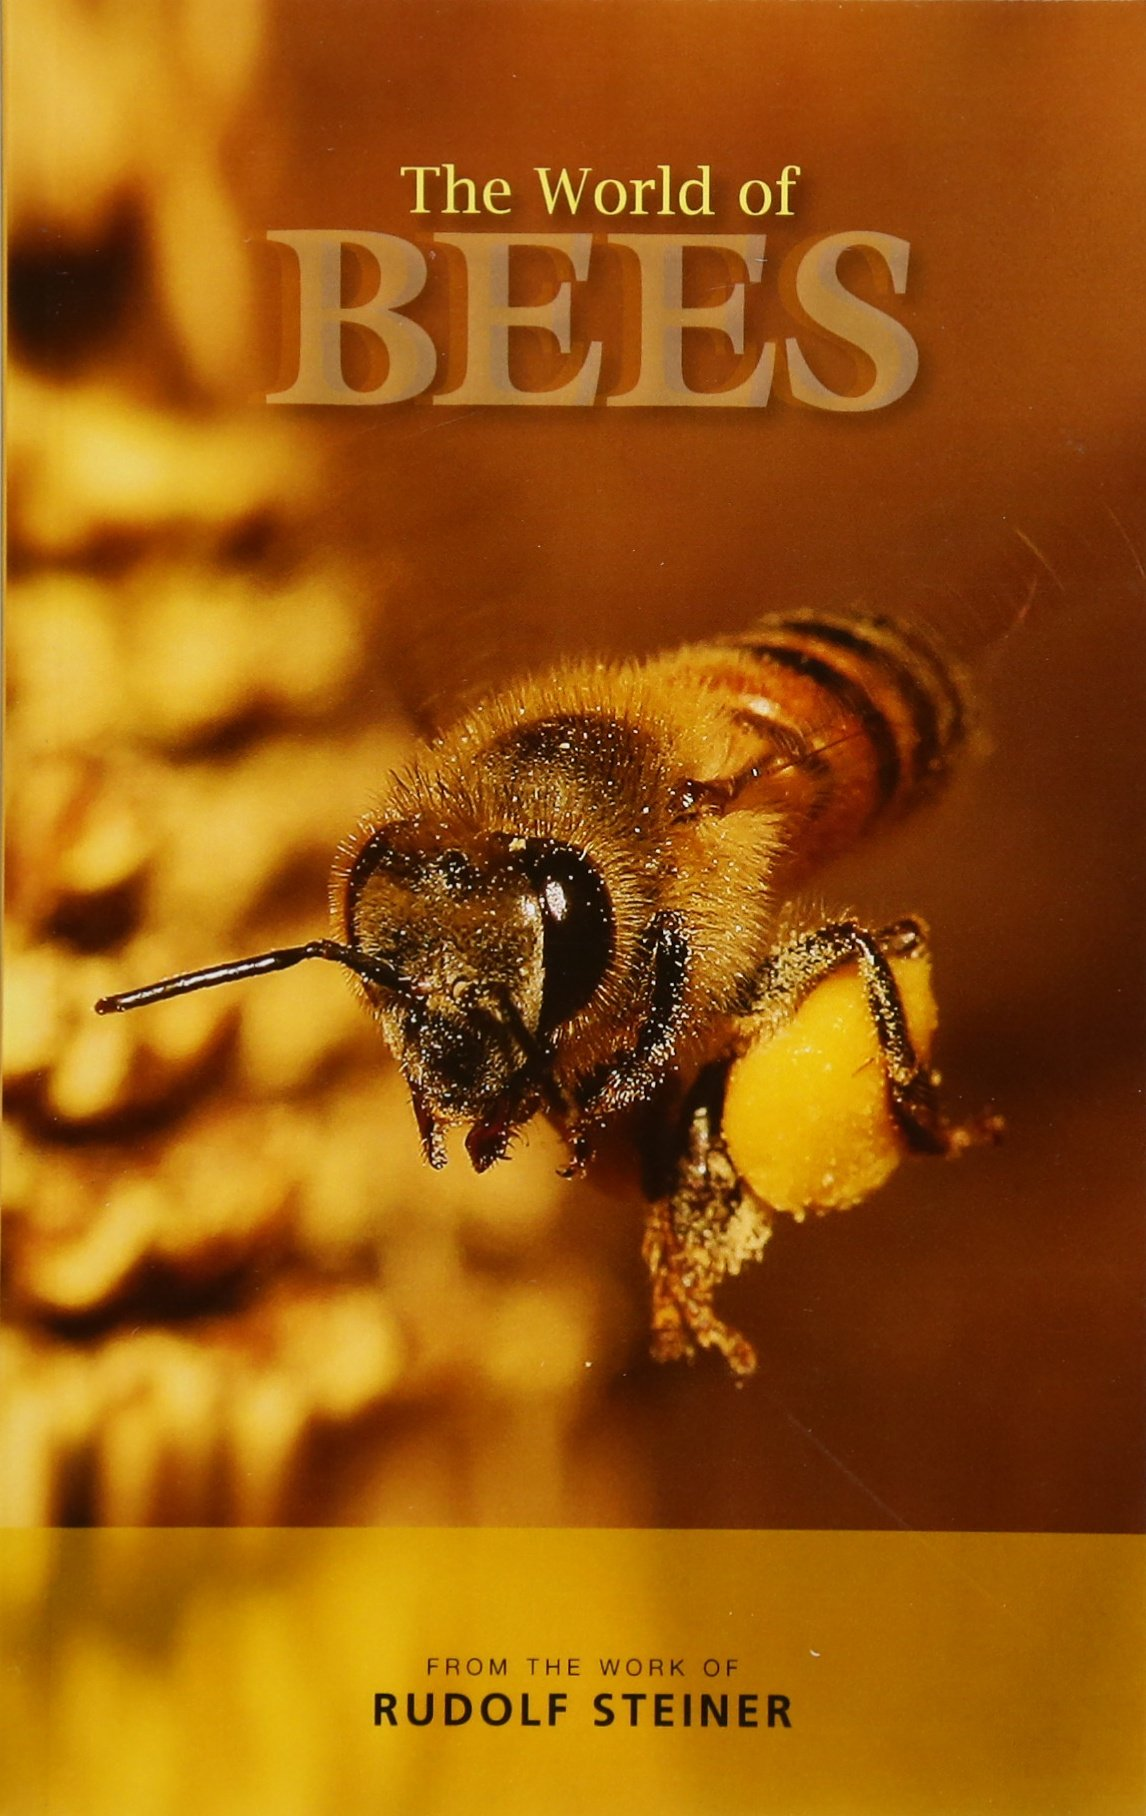 an article contains 500 words about The Bee - Nature's Perfect Creature